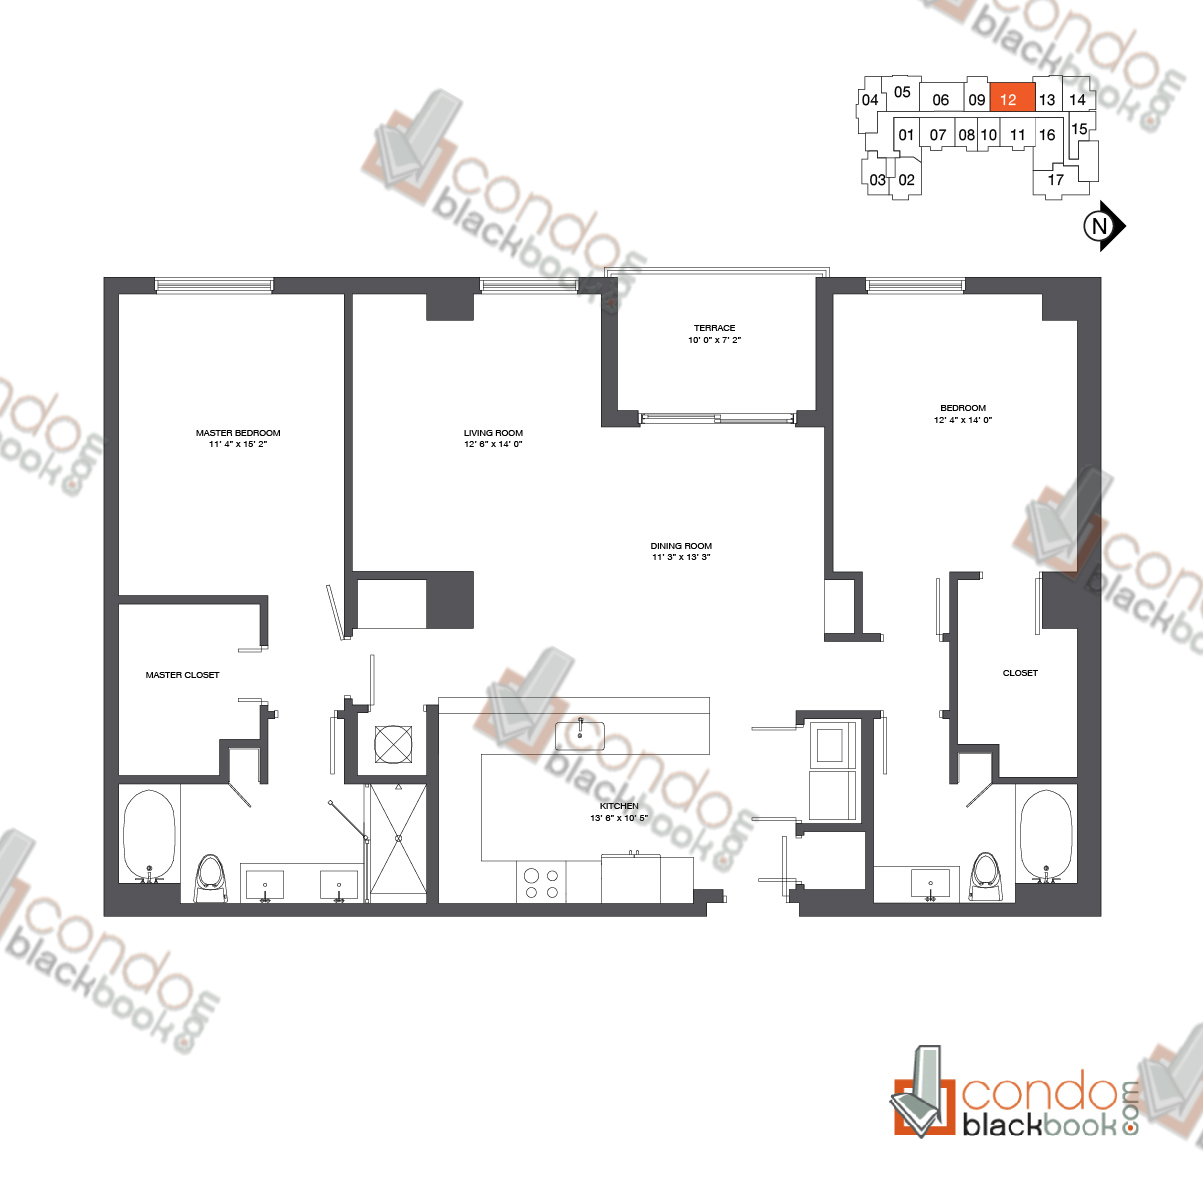 Floor plan for Nine at Mary Brickell Village Brickell Miami, model Residence 12-33_12, line 12, 2/2 bedrooms, 1,489 sq ft